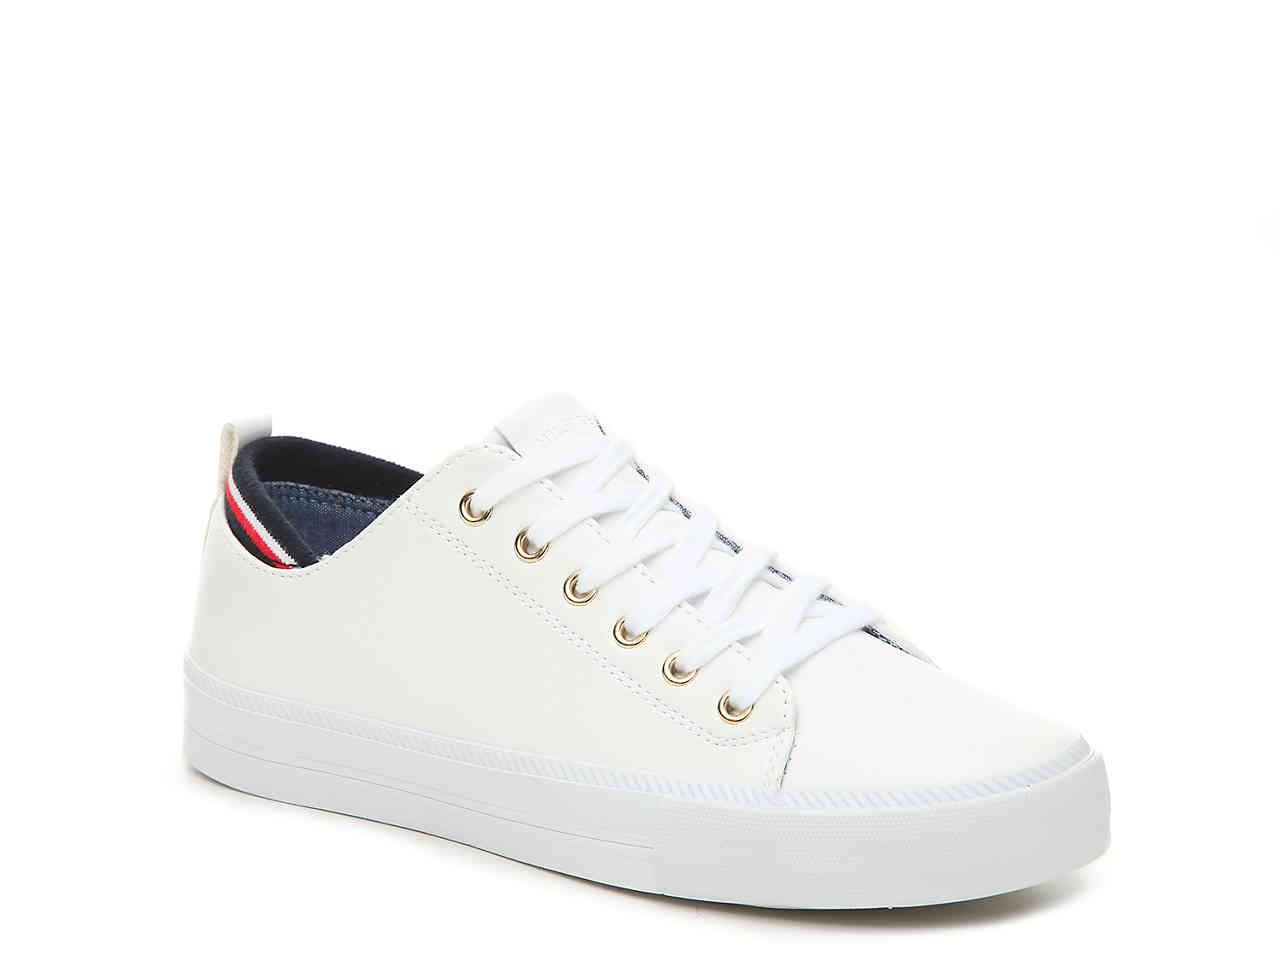 Tommy Hilfiger Two Sneaker in White